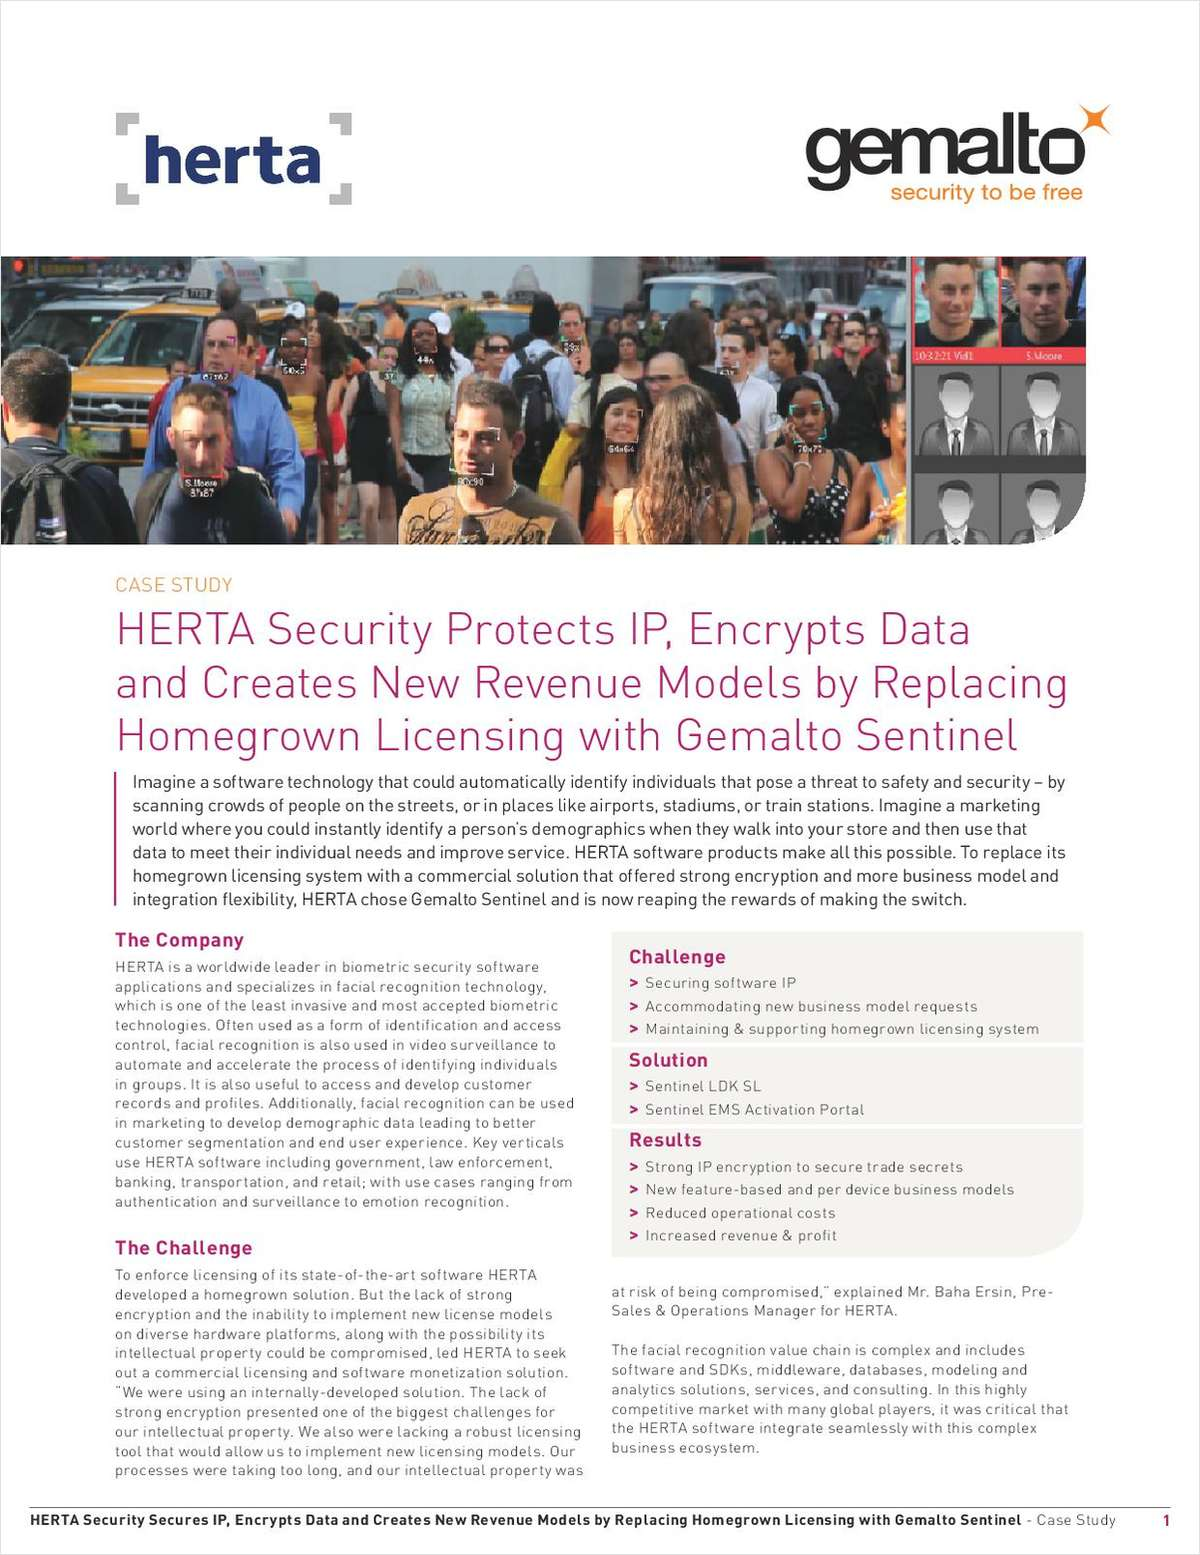 HERTA Security Protects IP, Encrypts Data and Creates New Revenue Models by Replacing Homegrown Software Licensing